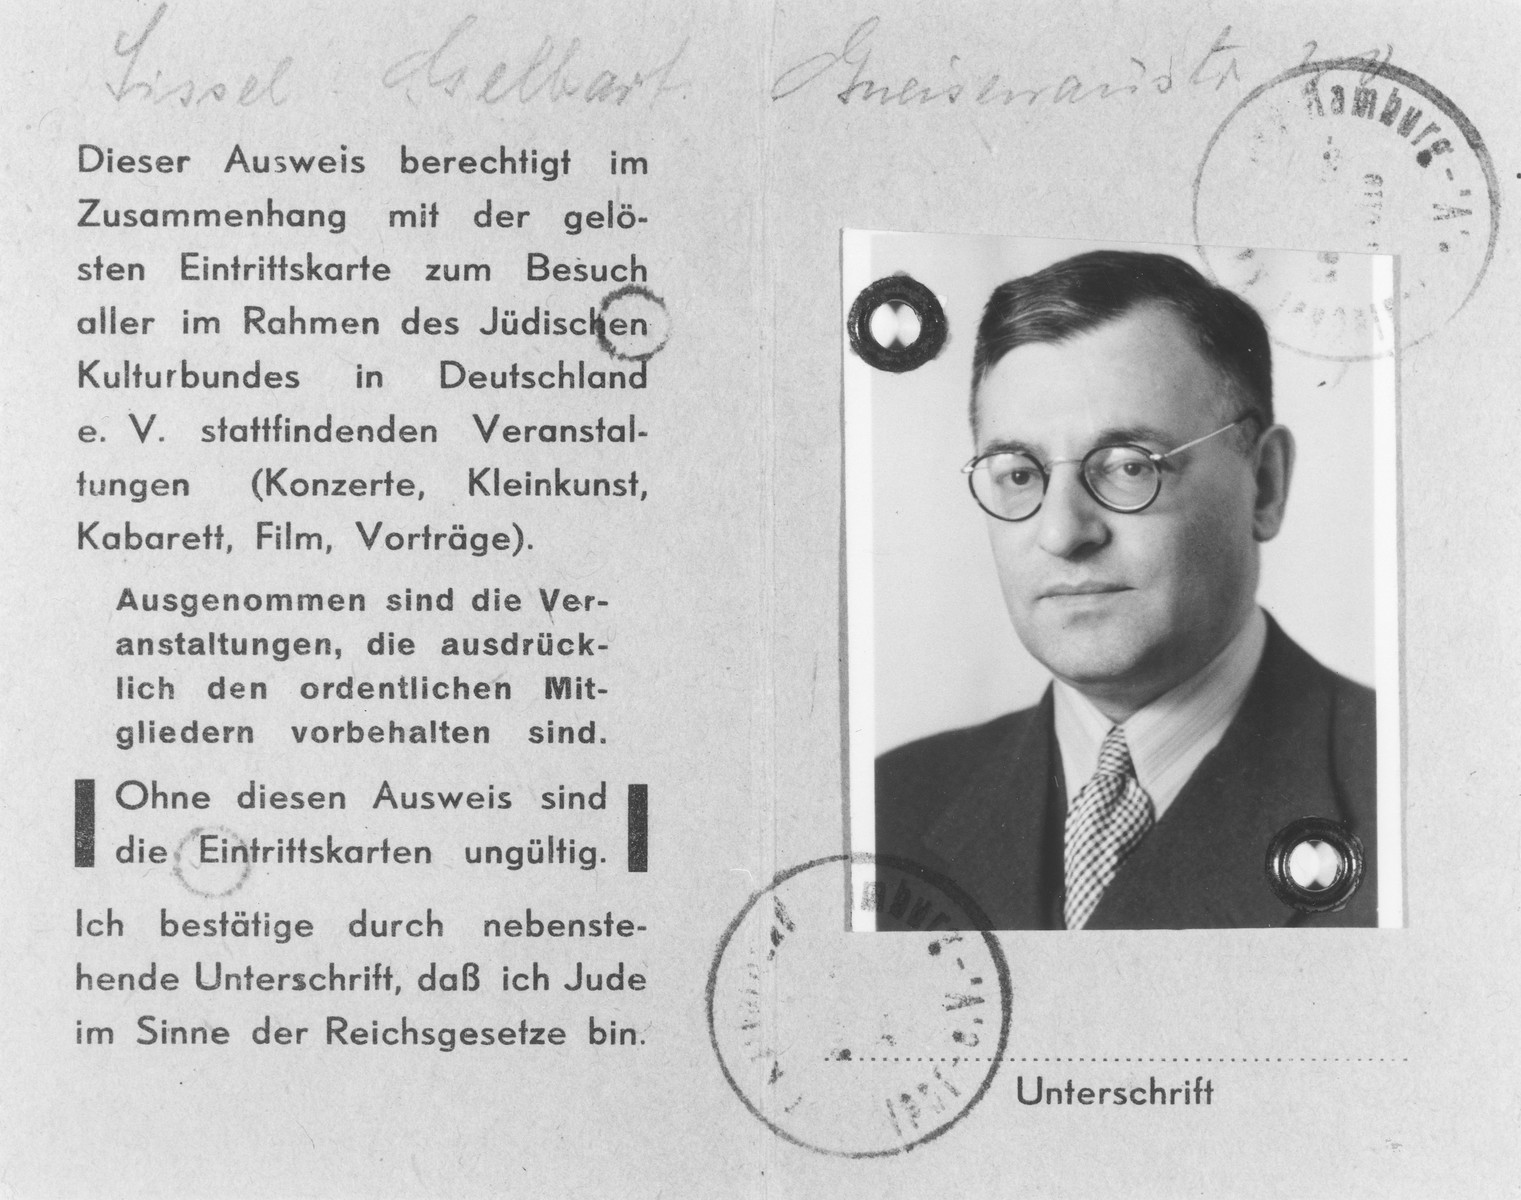 Membership card in the Juedischer Kulturbund issued to Cecil Gelbart, providing admission to Kulturbund concerts, plays and films.